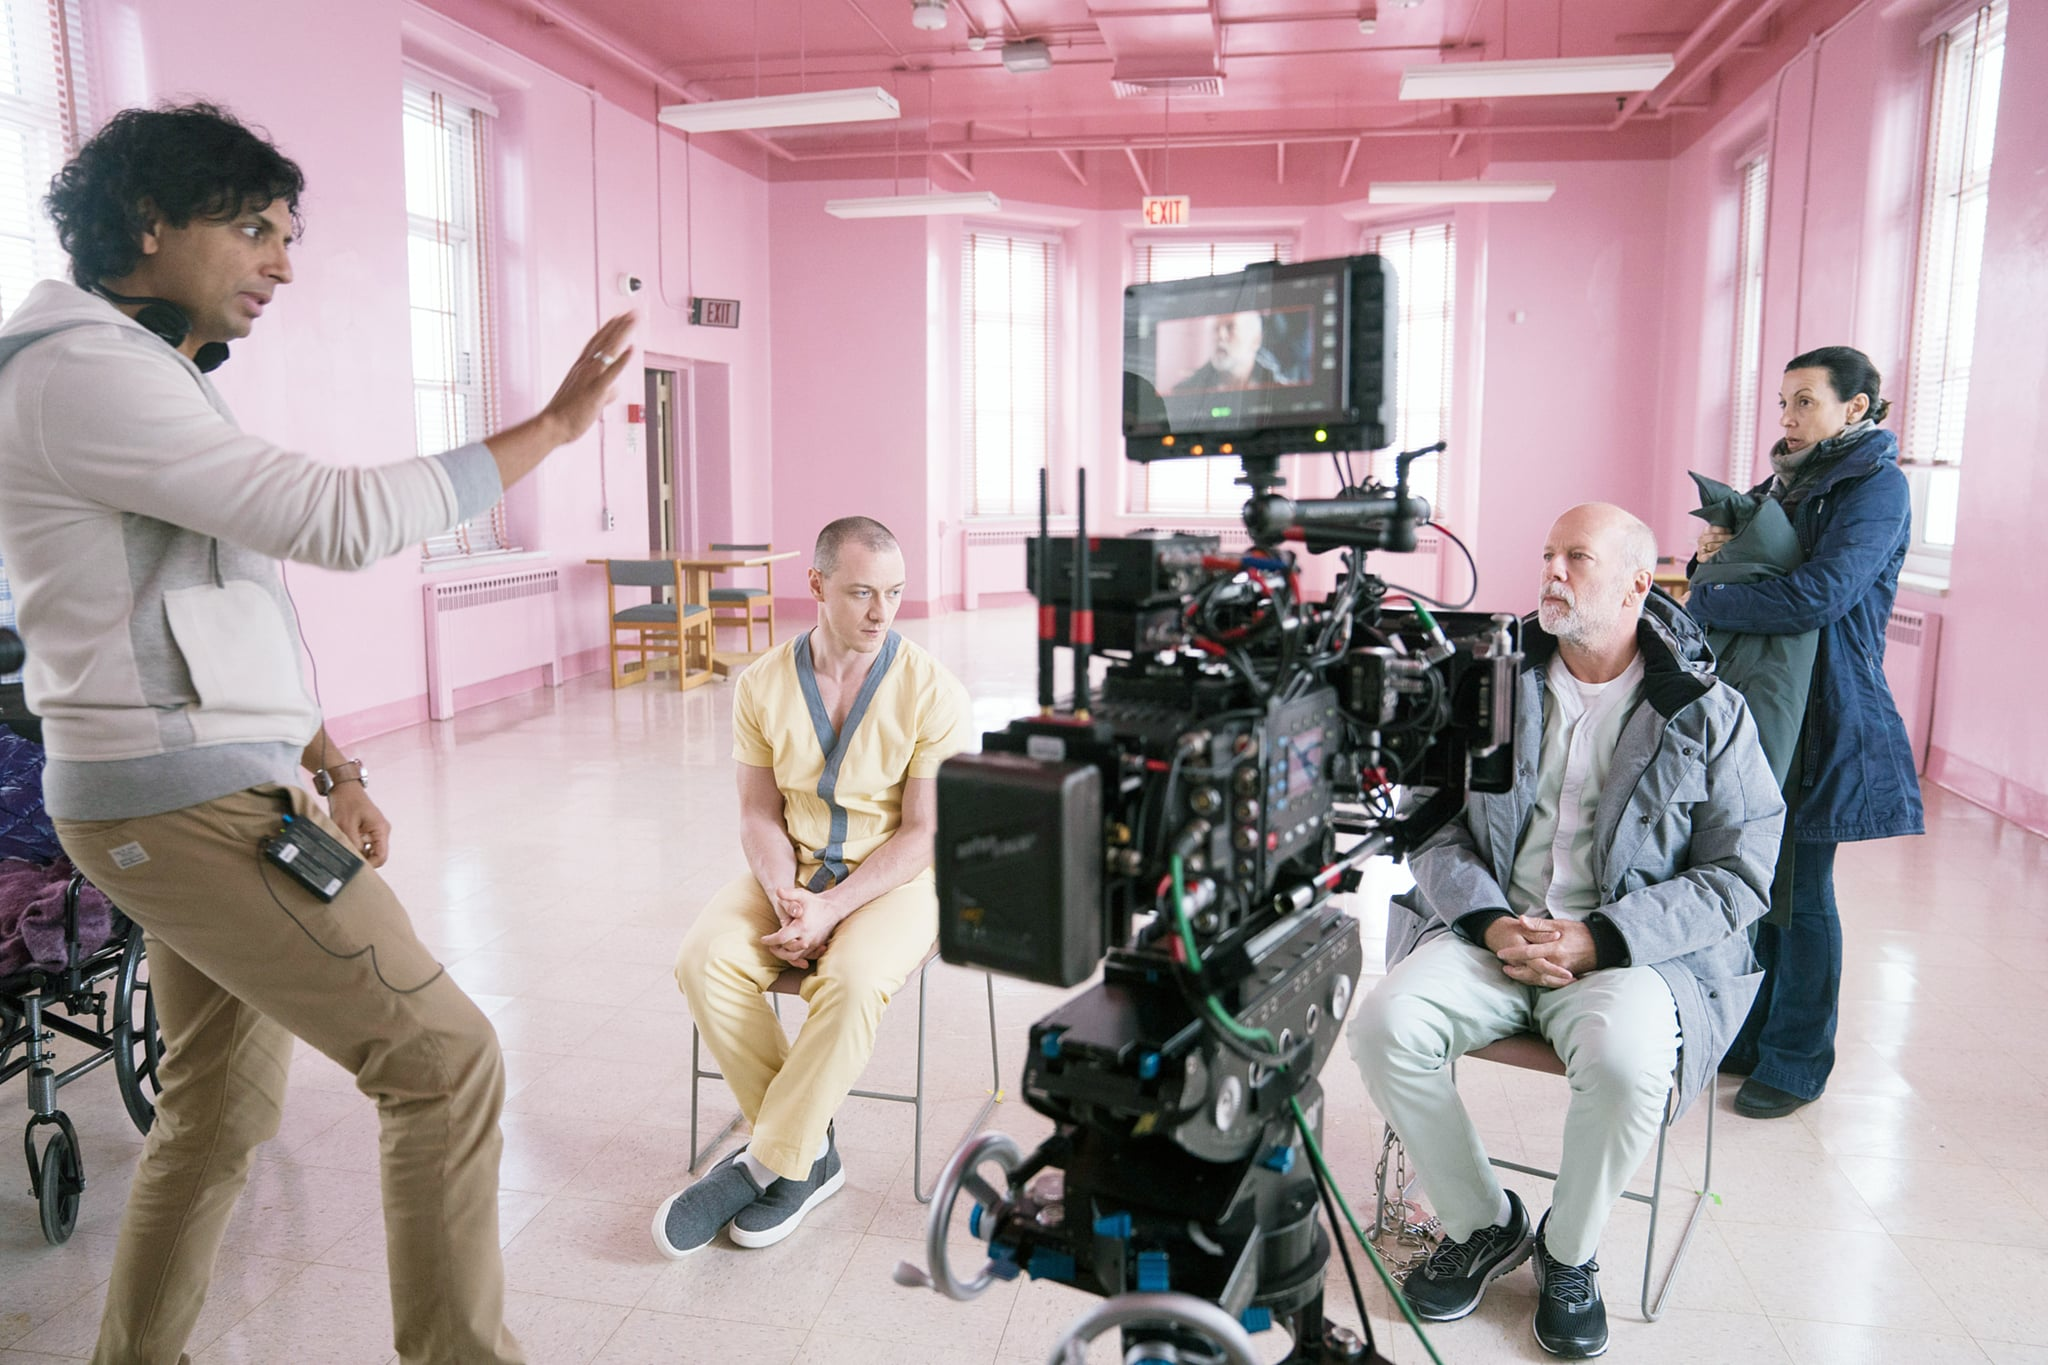 GLASS, from left: director M. Night Shyamalan, James McAvoy, Bruce Willis, on set, 2019. ph: Jessica Kourkounis /  Universal /Courtesy Everett Collection